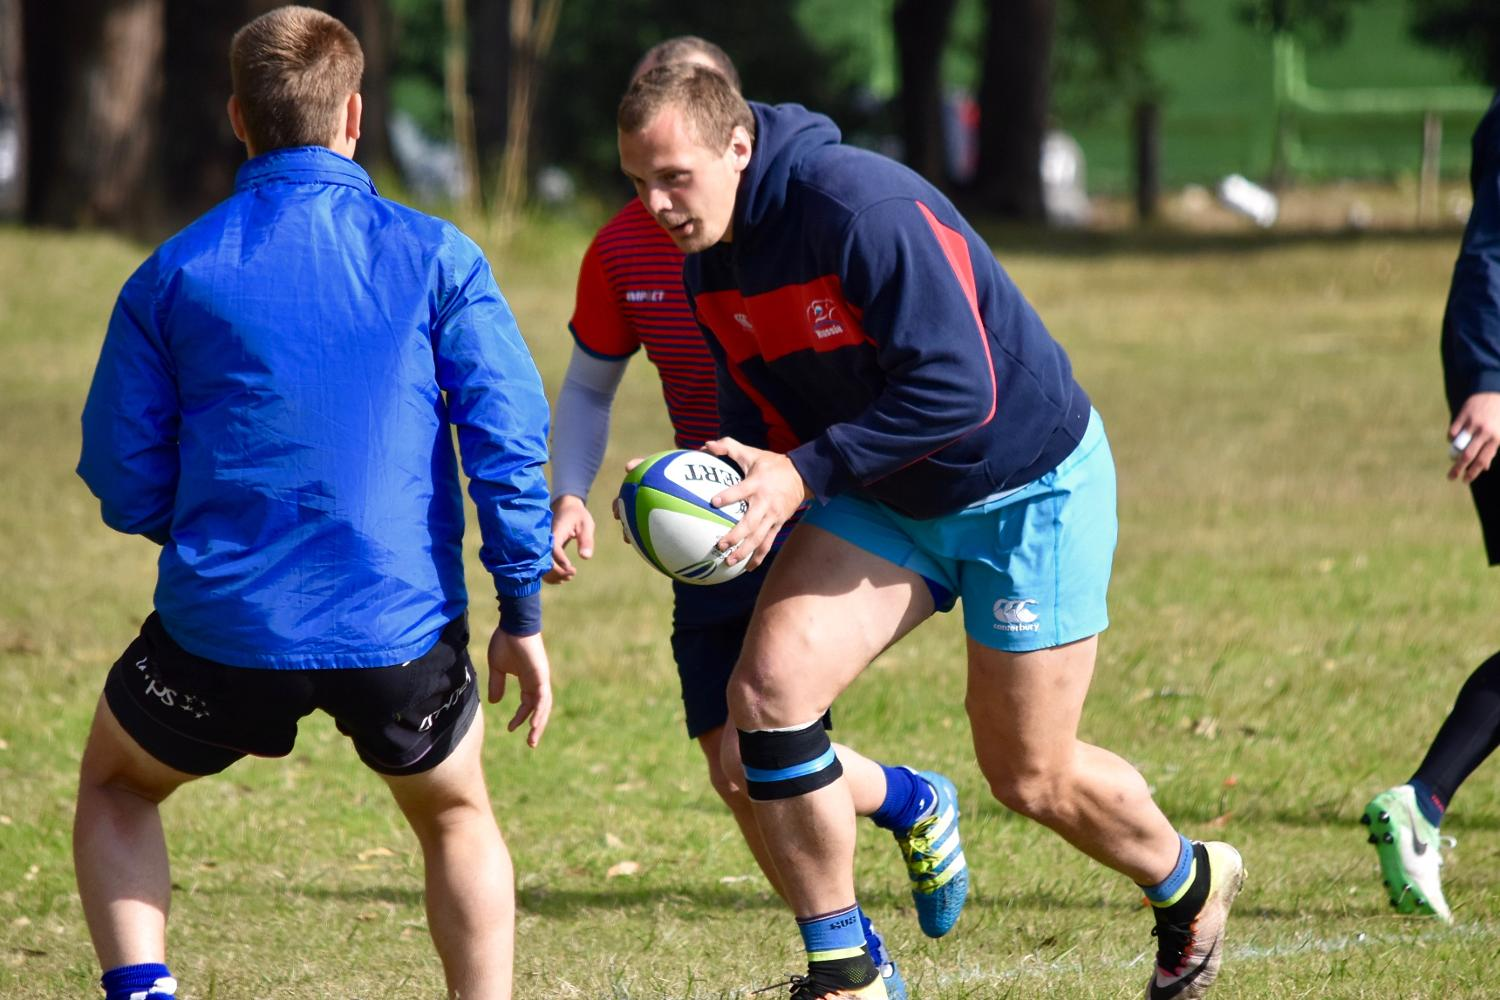 World Rugby Nations Cup 2017: Russia's Denis Simplikevich